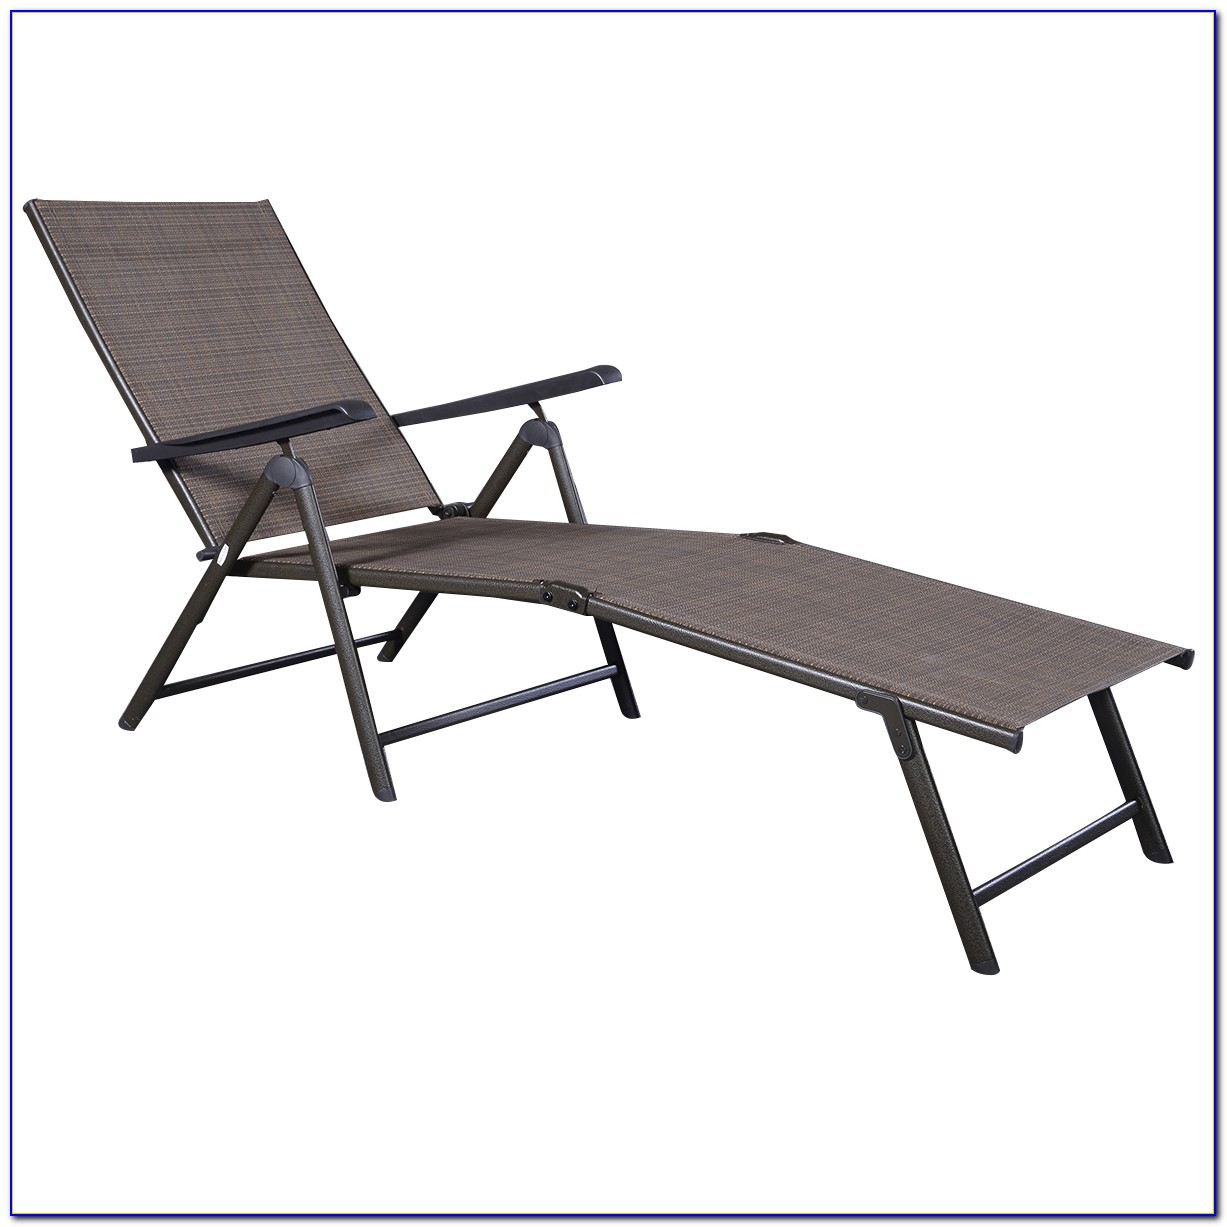 Outdoor Folding Chaise Lounge Chairs